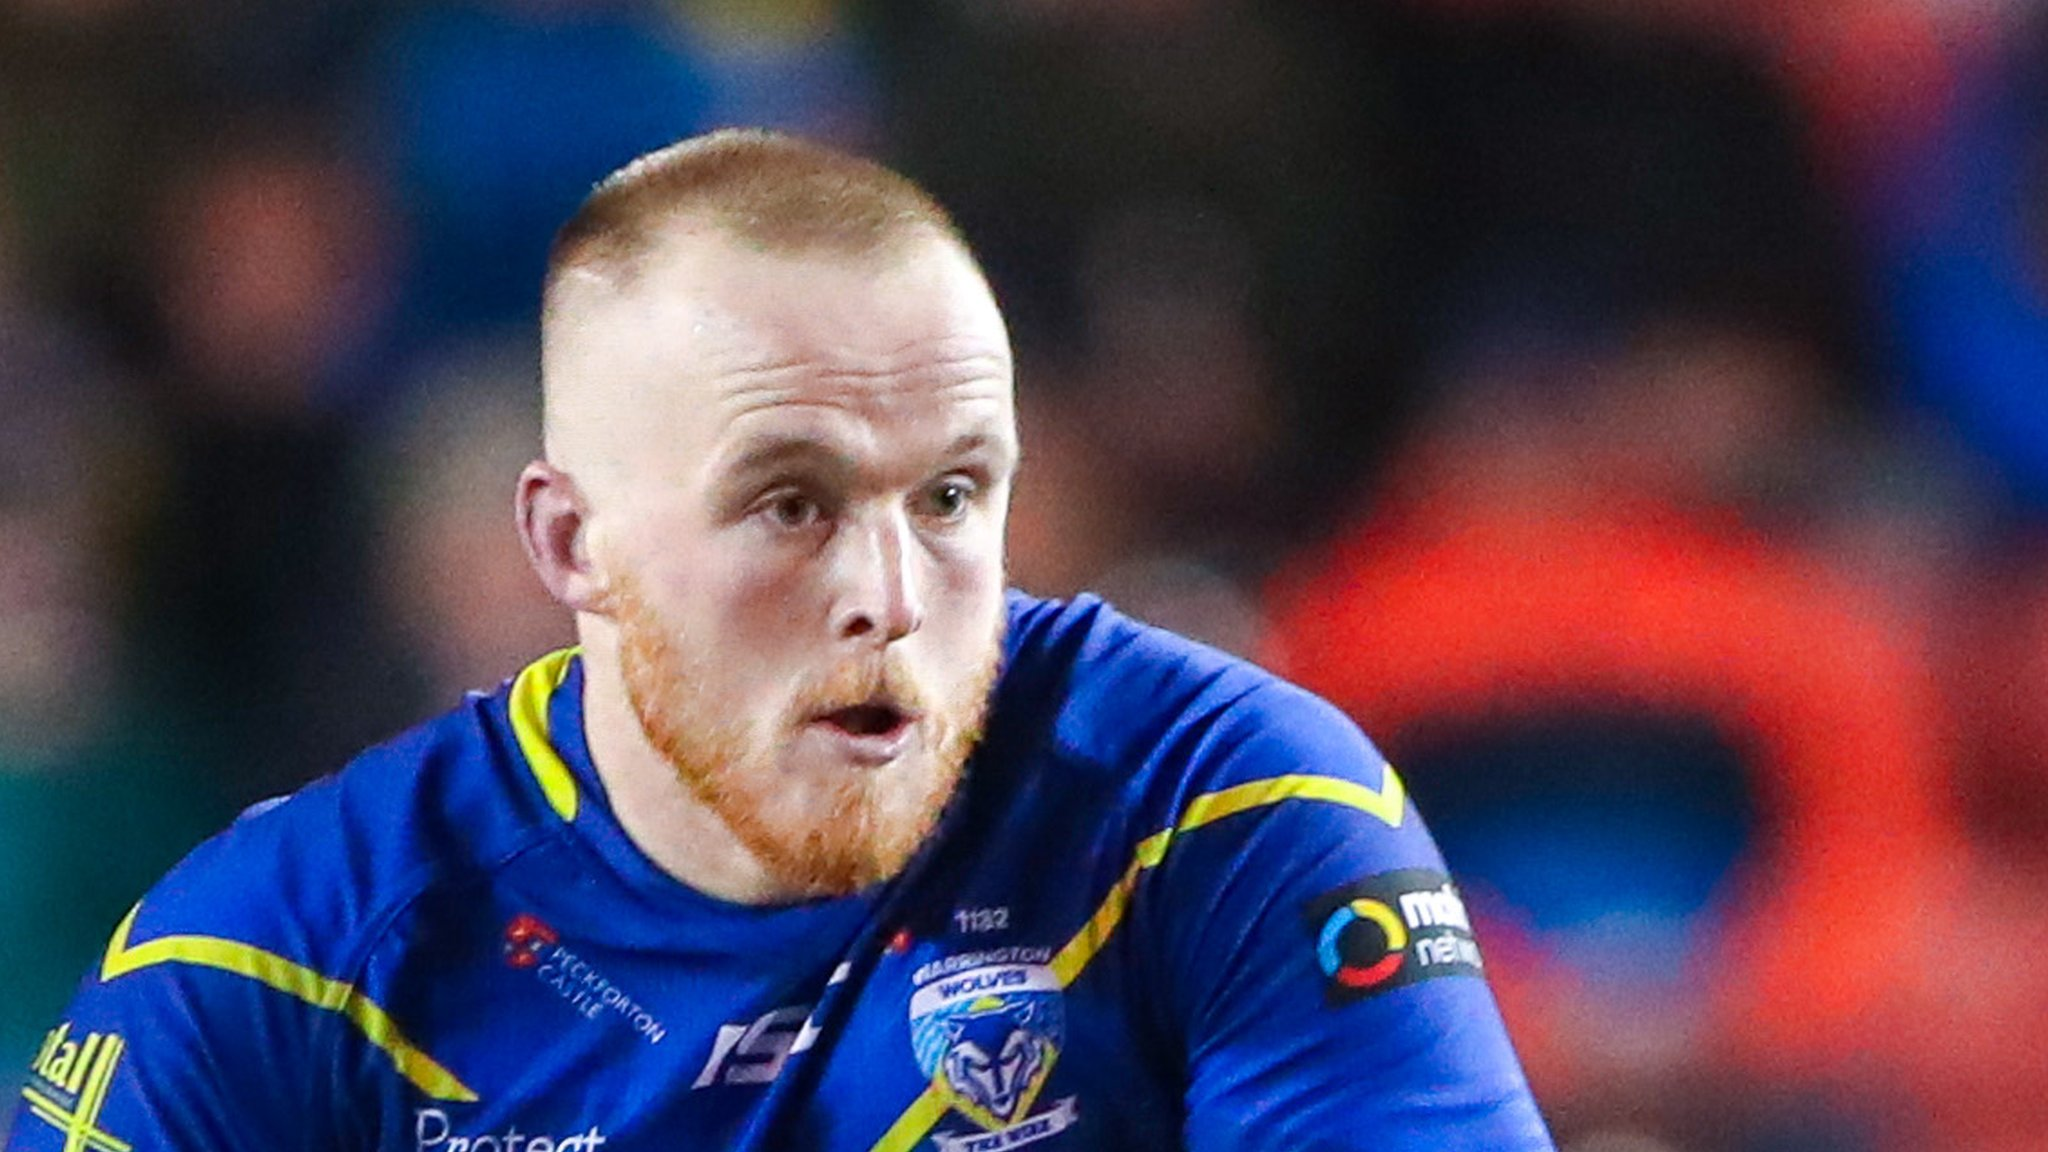 Dom Crosby: Leeds Rhinos sign prop on loan from Warrington Wolves